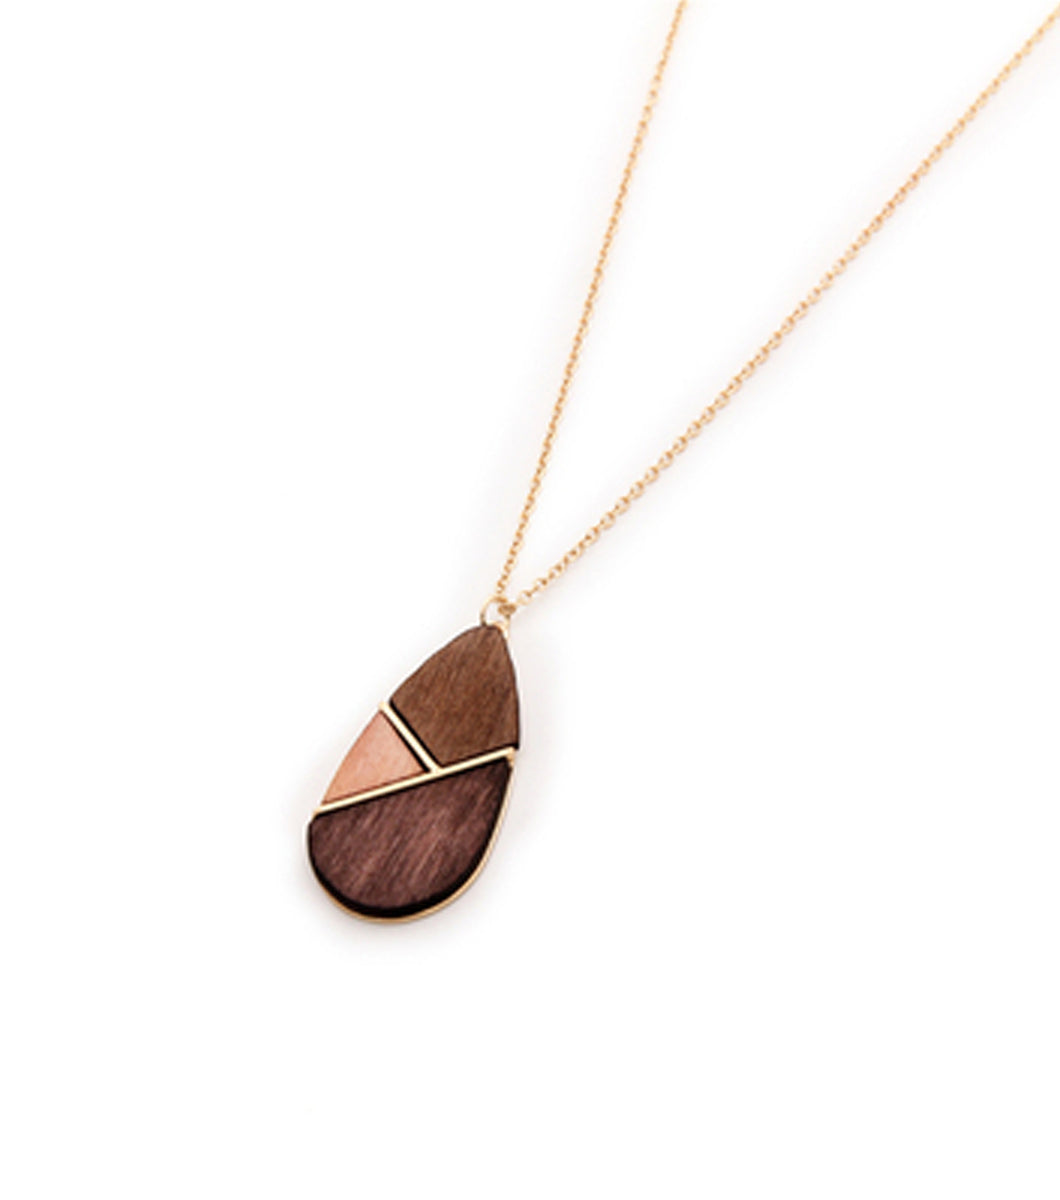 Lorrin Necklace w/ Wood Tear Drop Pendant